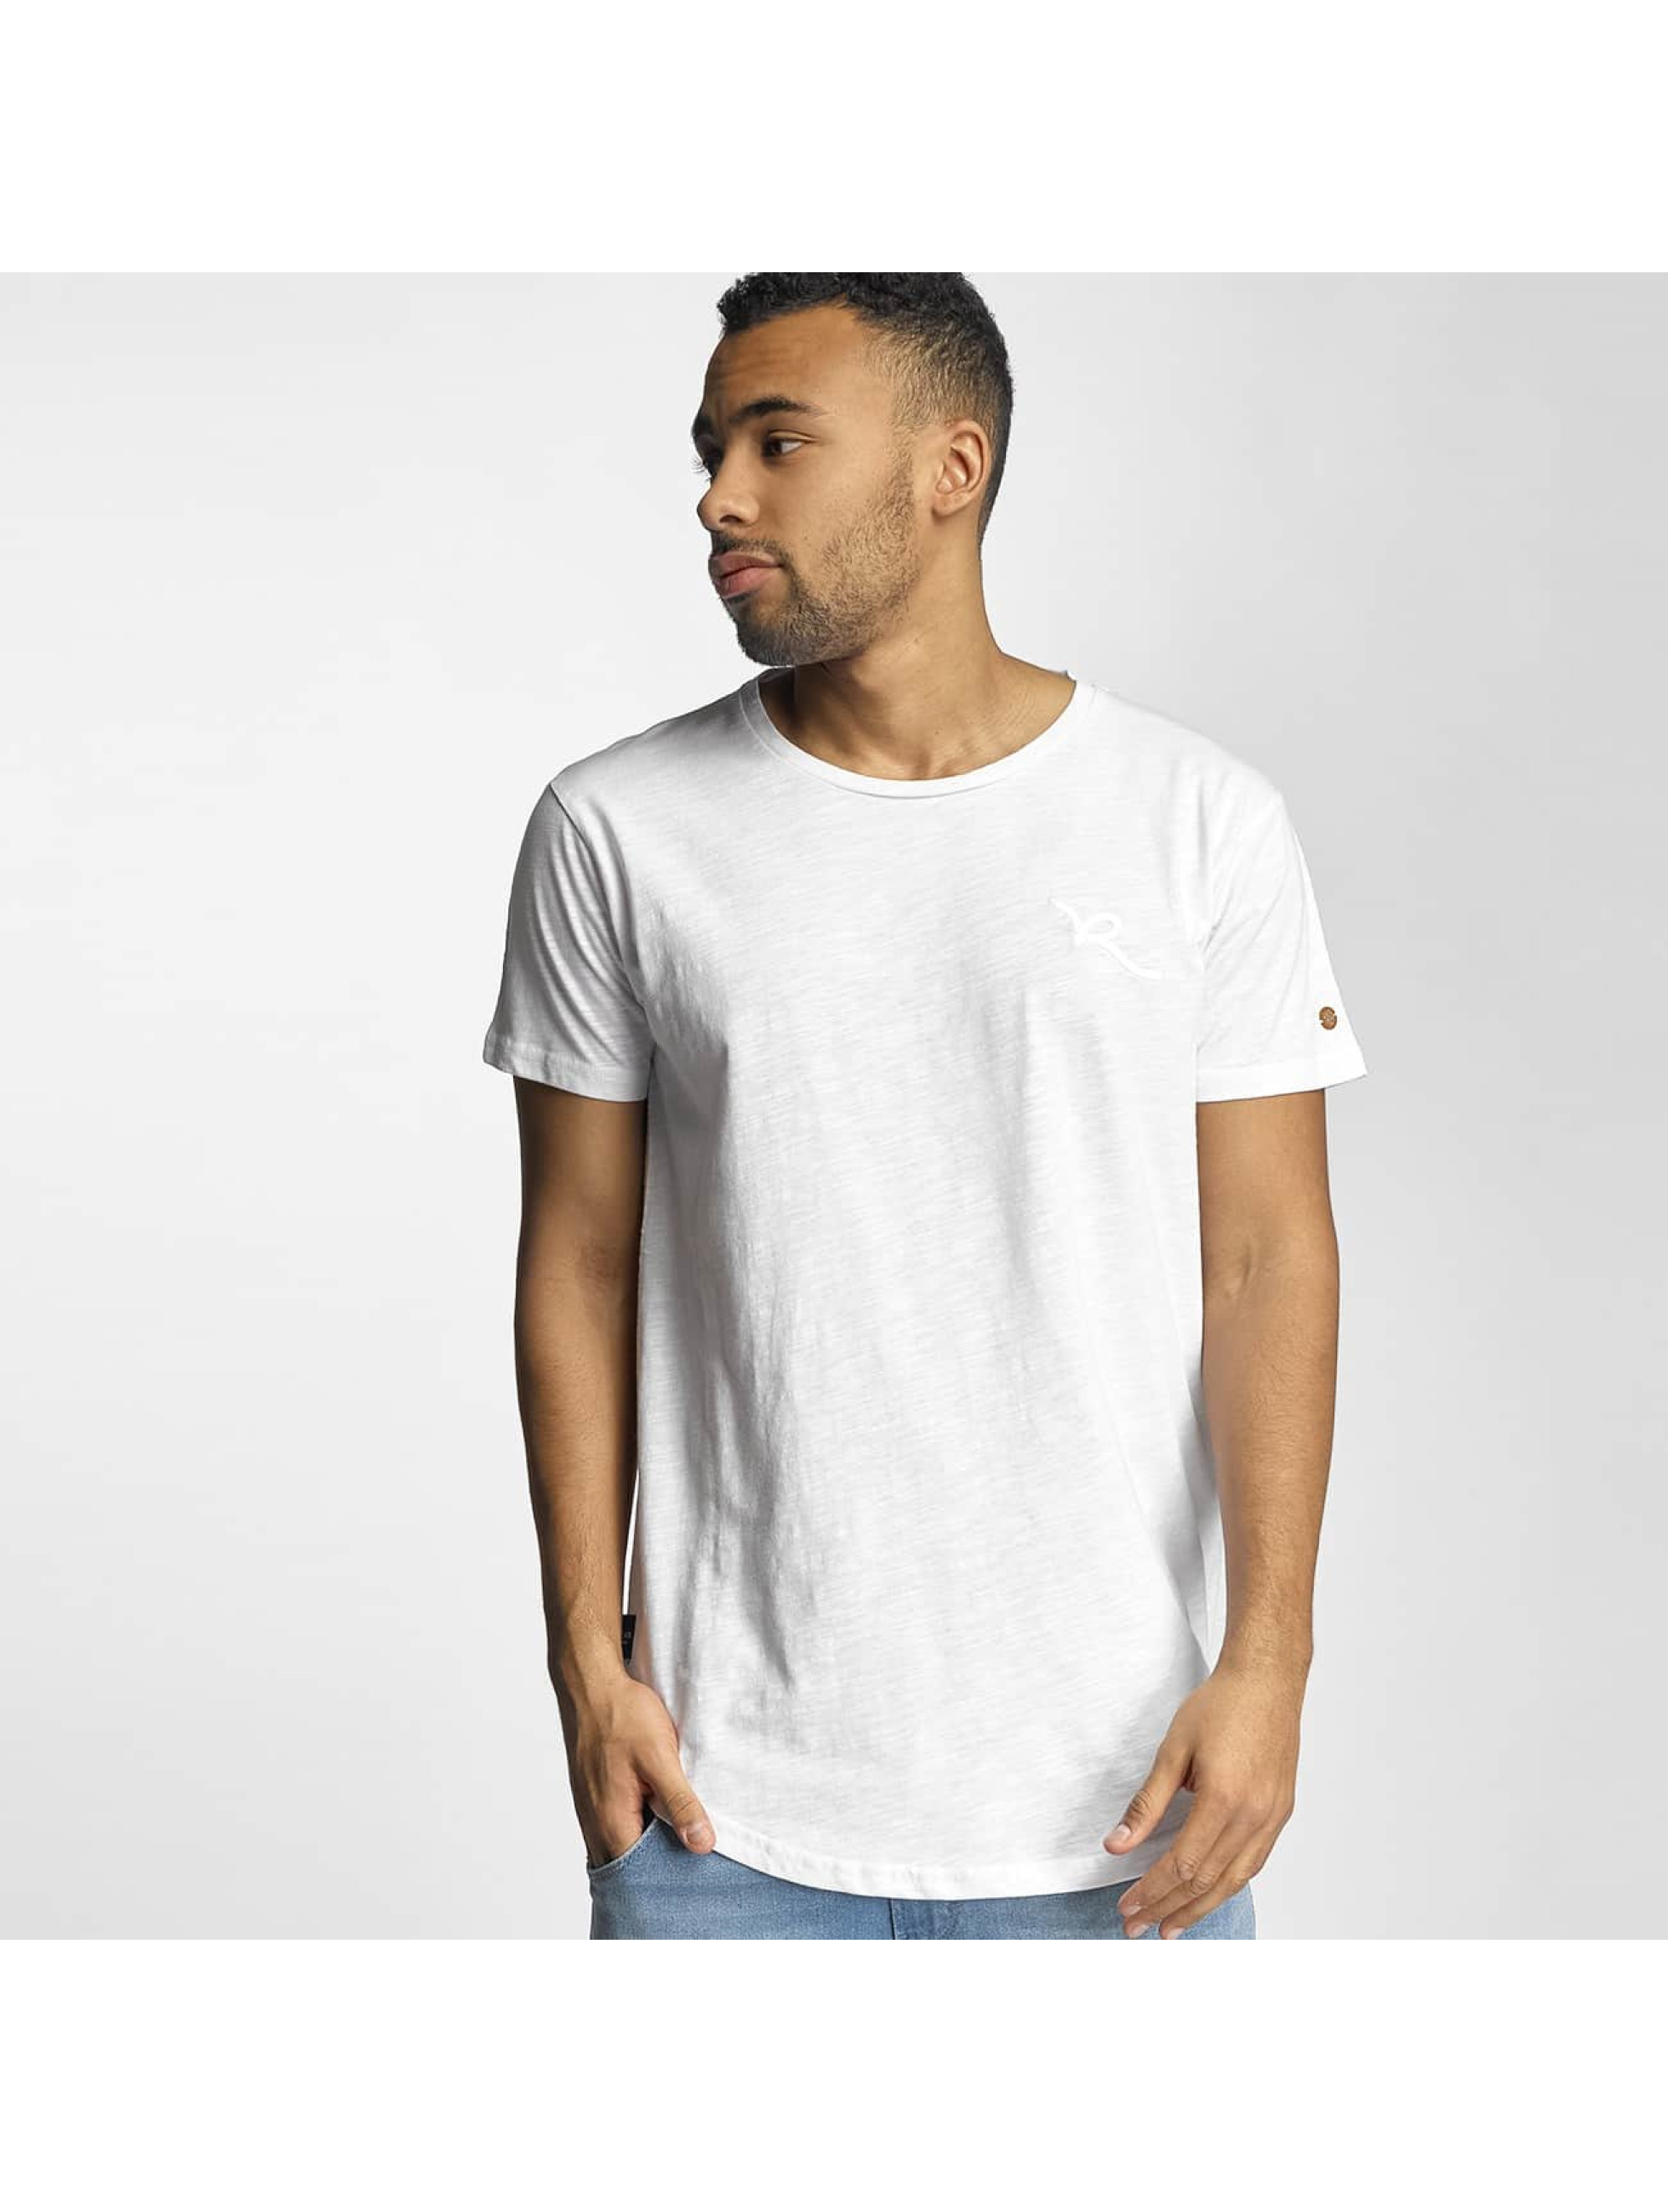 Rocawear Soft blanc T-Shirt homme